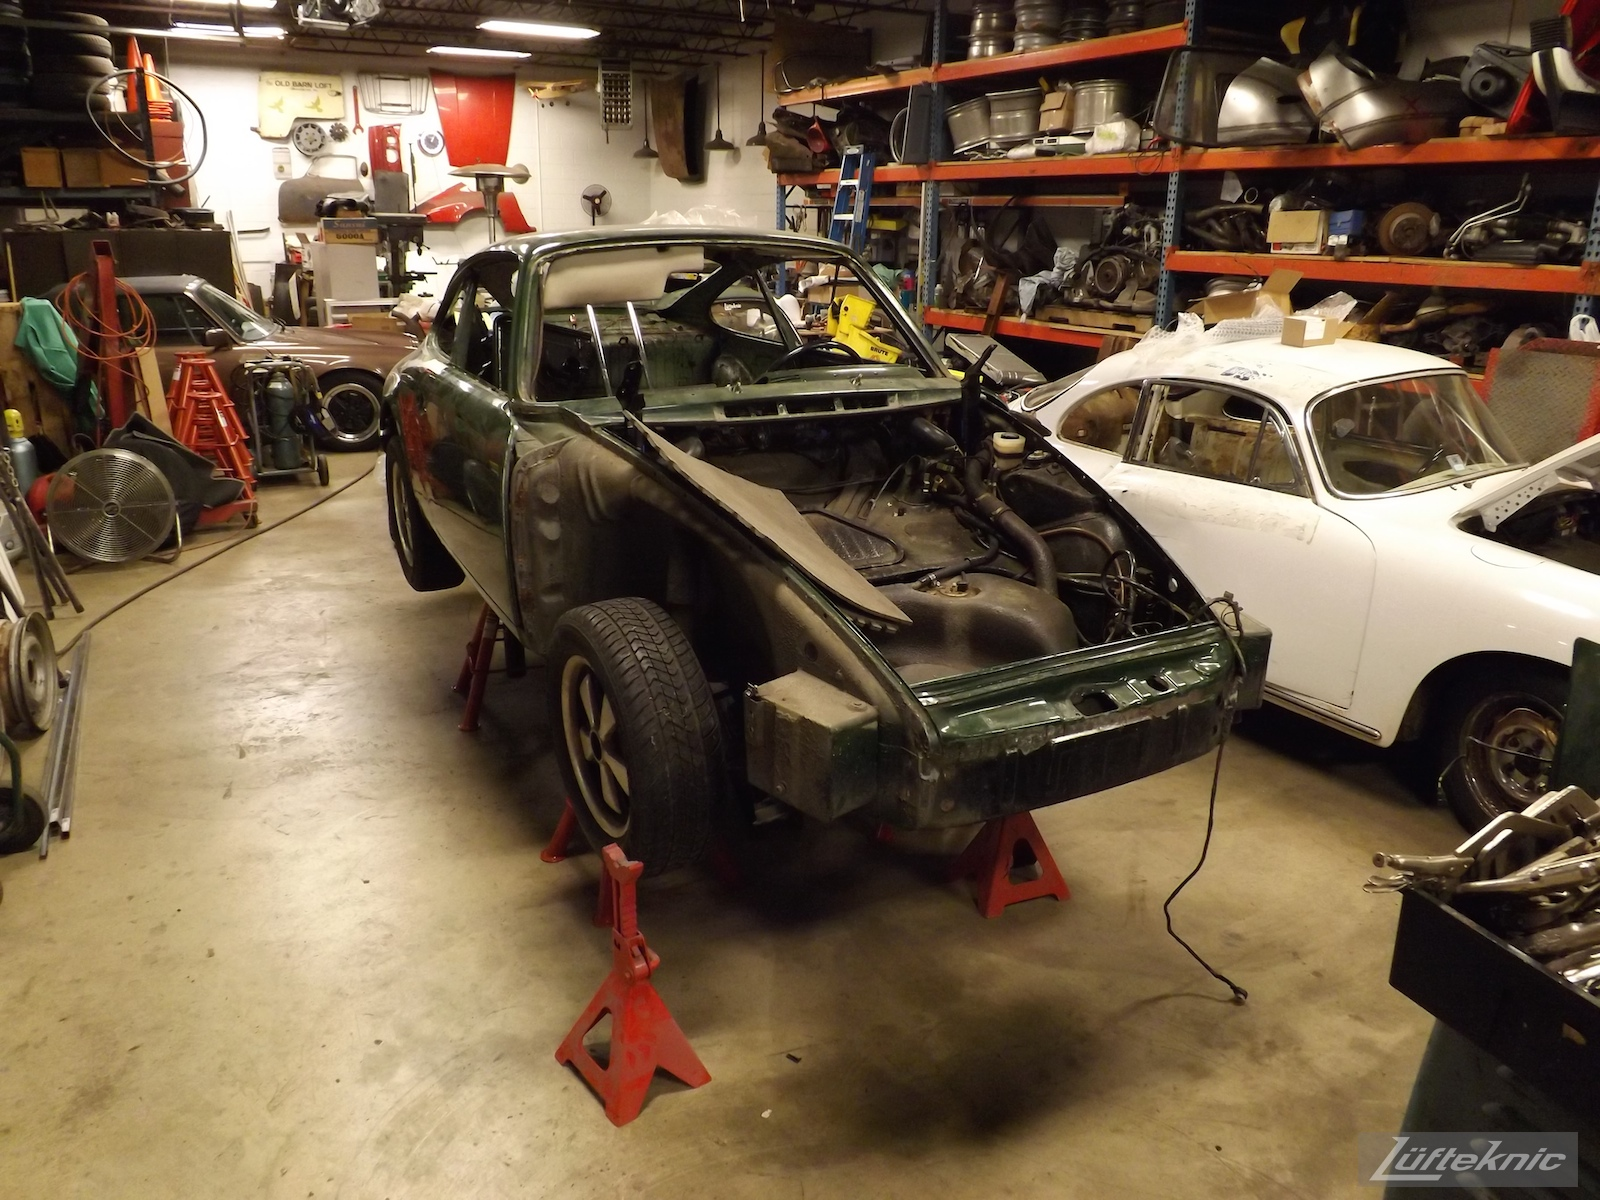 An overall picture of the chassis on jack stands of an Irish Green Porsche 912 undergoing restoration at Lufteknic.